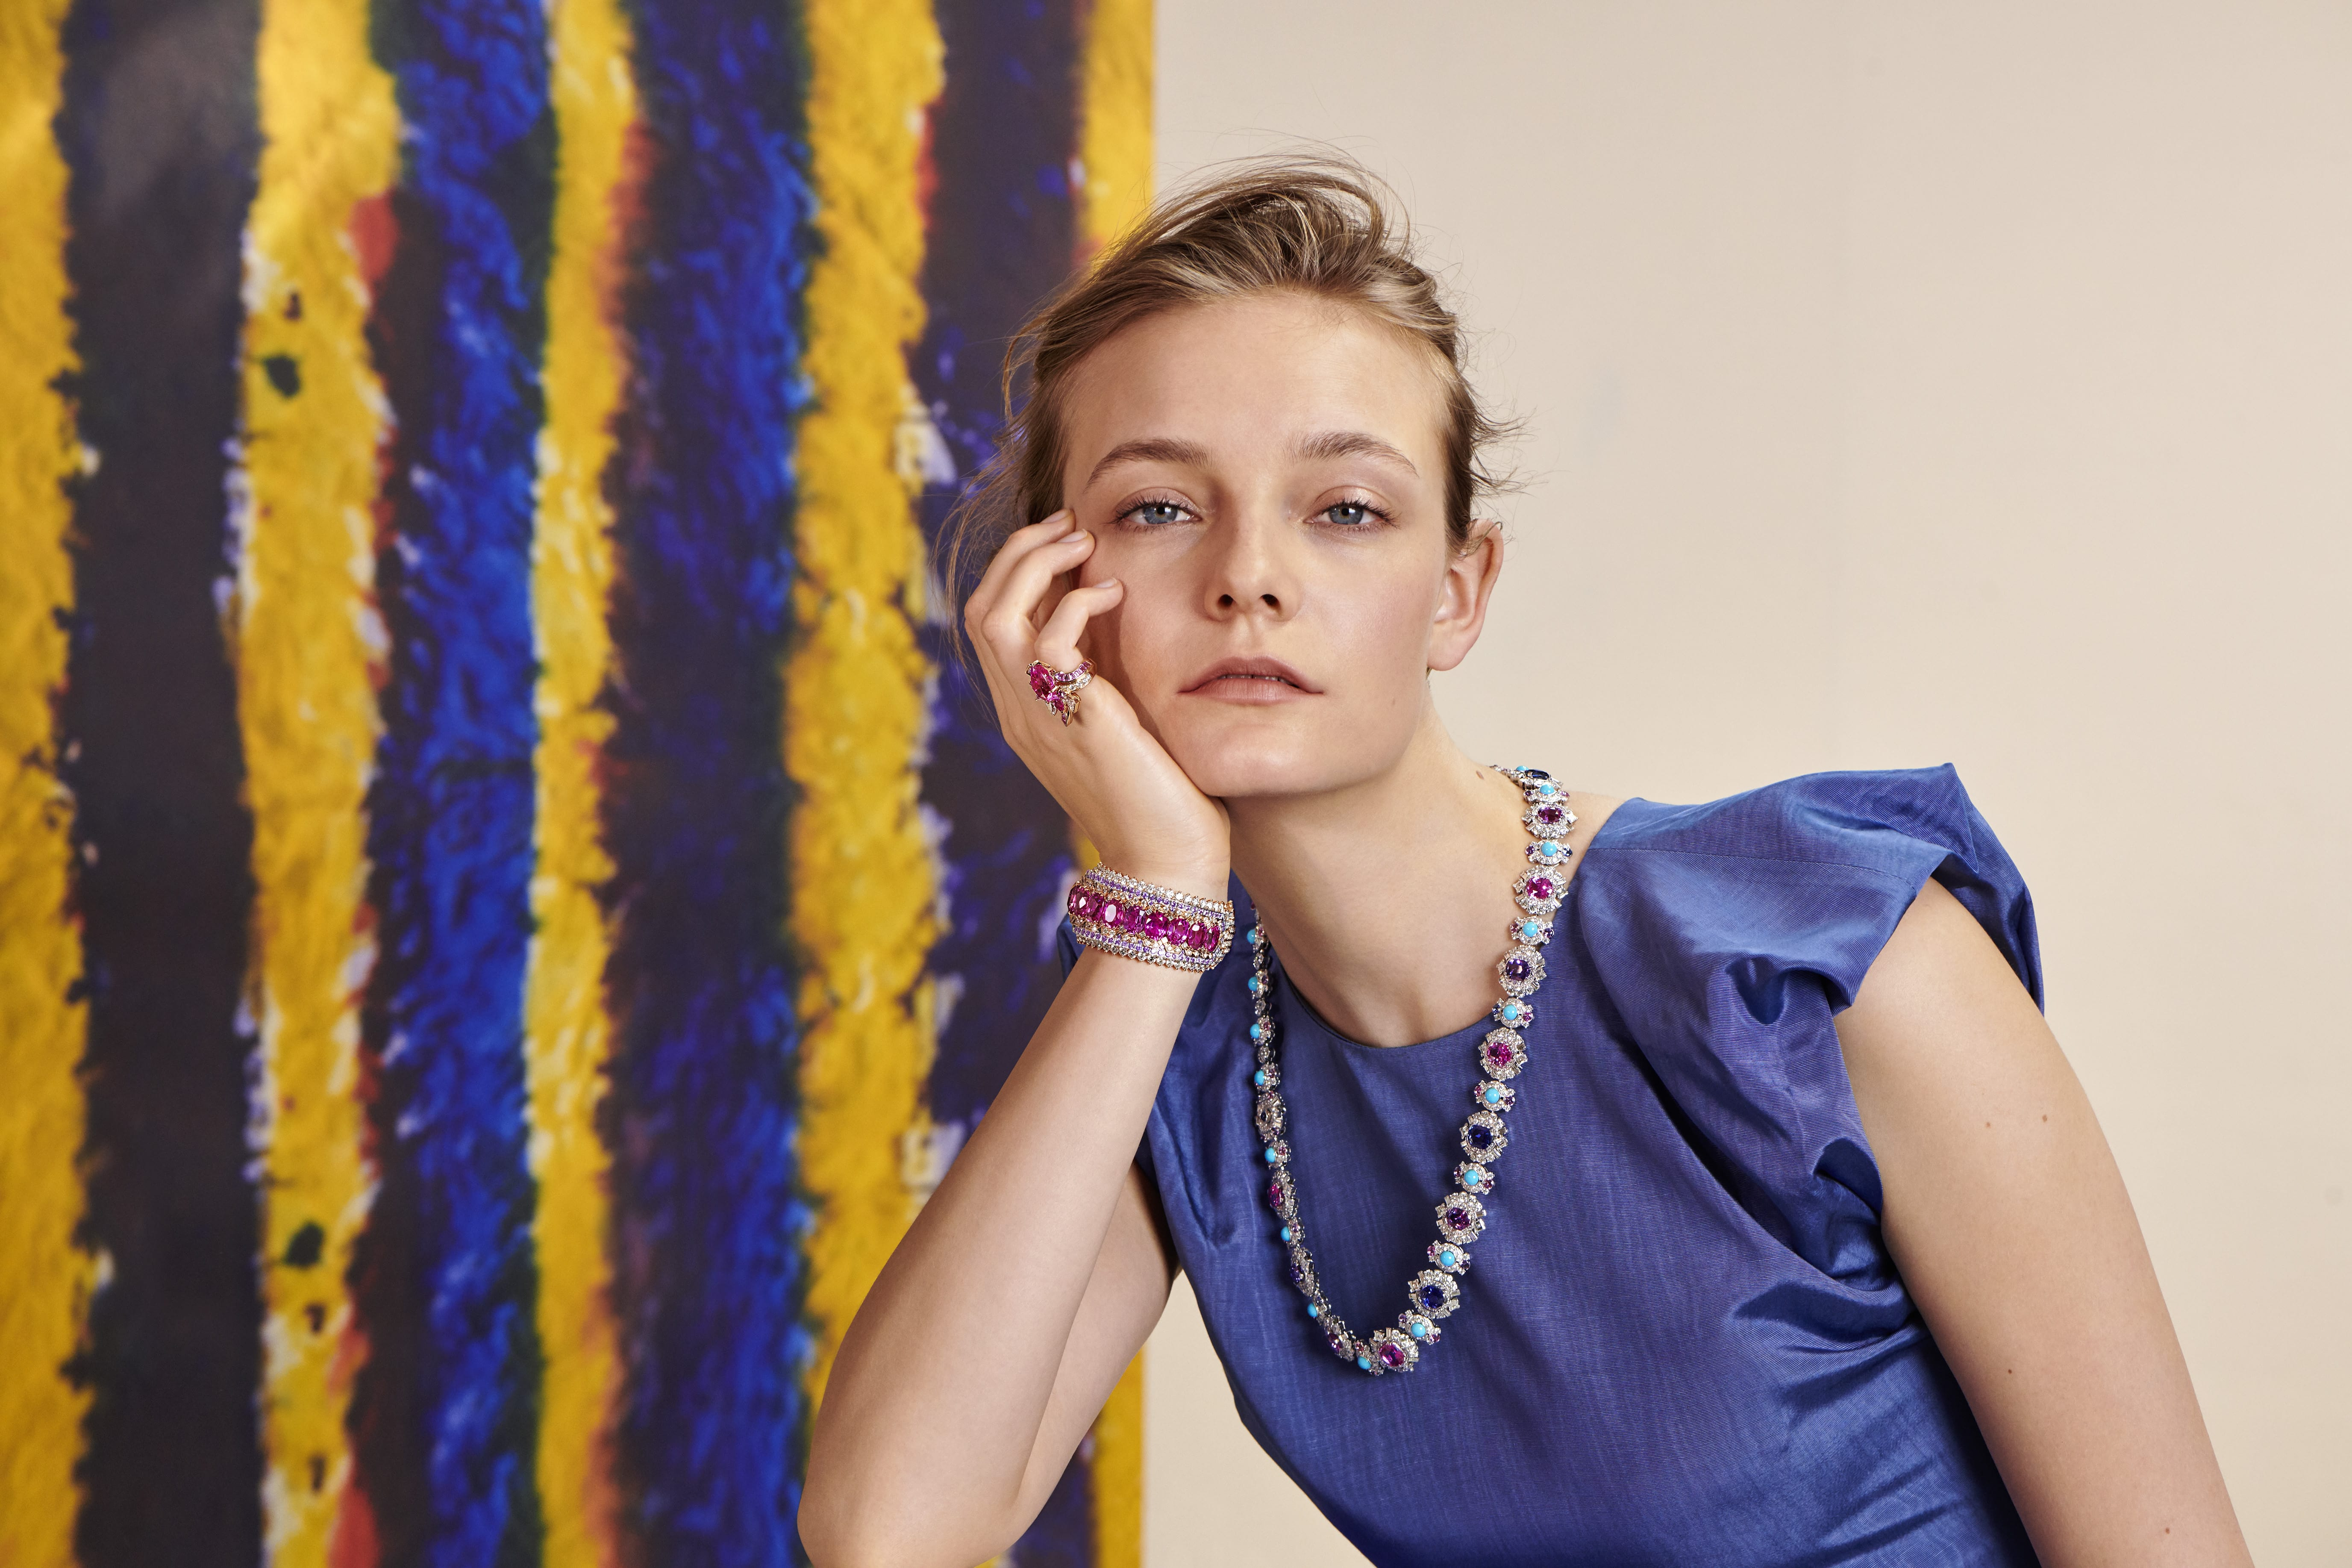 Van Cleef & Arpels new jewellery collection is inspired by Romeo and Juliet